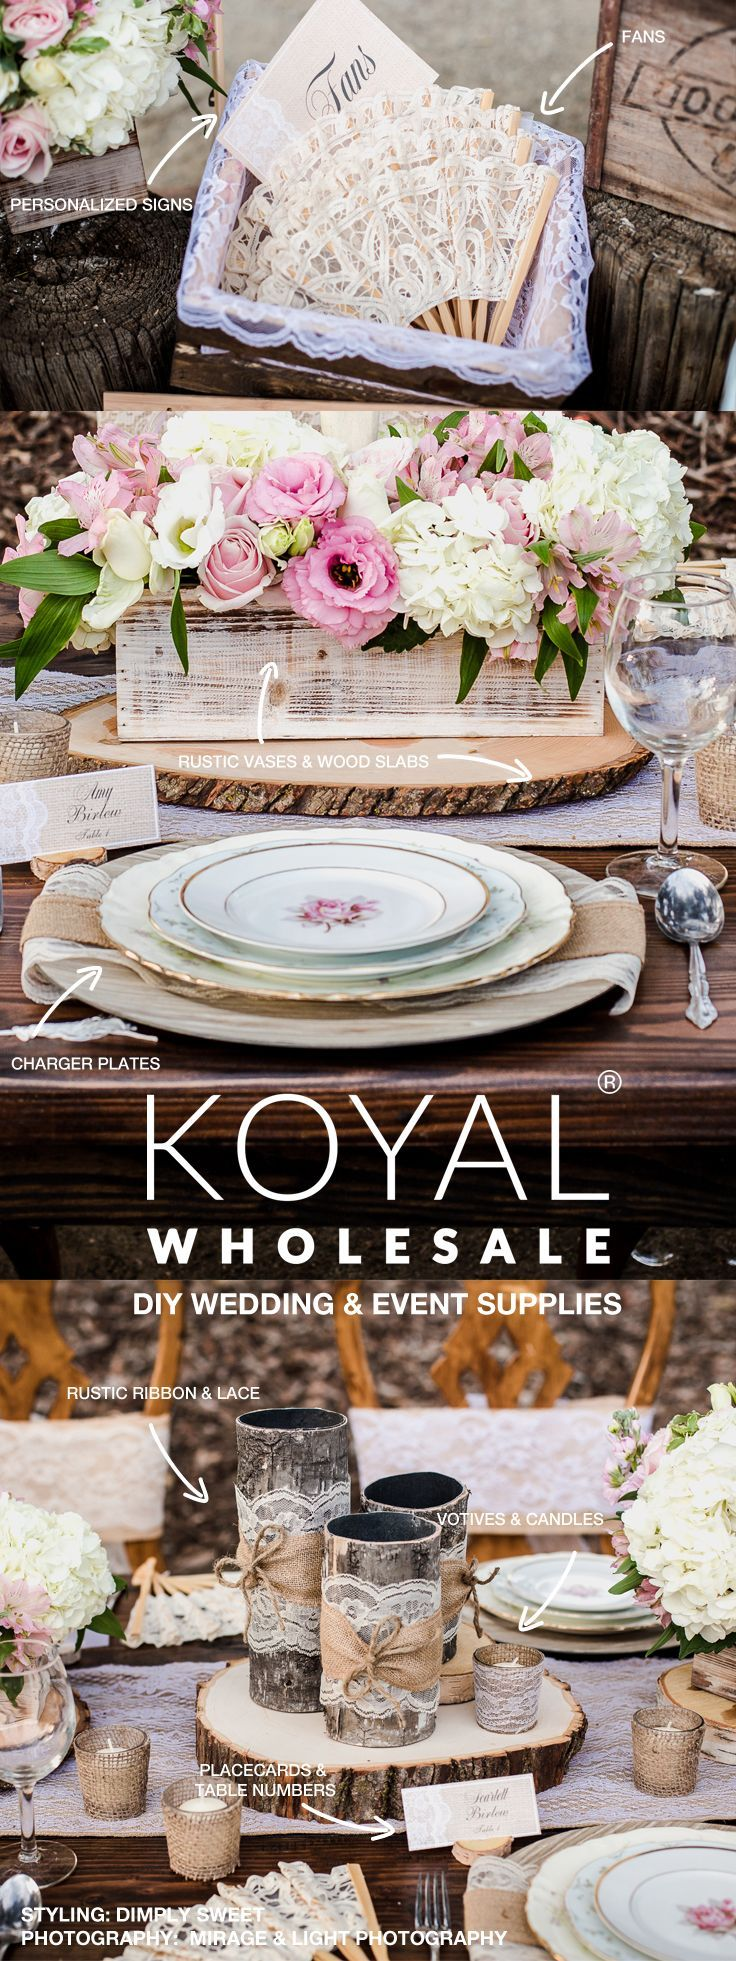 Wholesale Rustic Wedding Supplies Event Centerpieces And Floral Decorations On Sale Free Shipping Wedding Supplies Wholesale Diy Wedding Wedding Table Linens